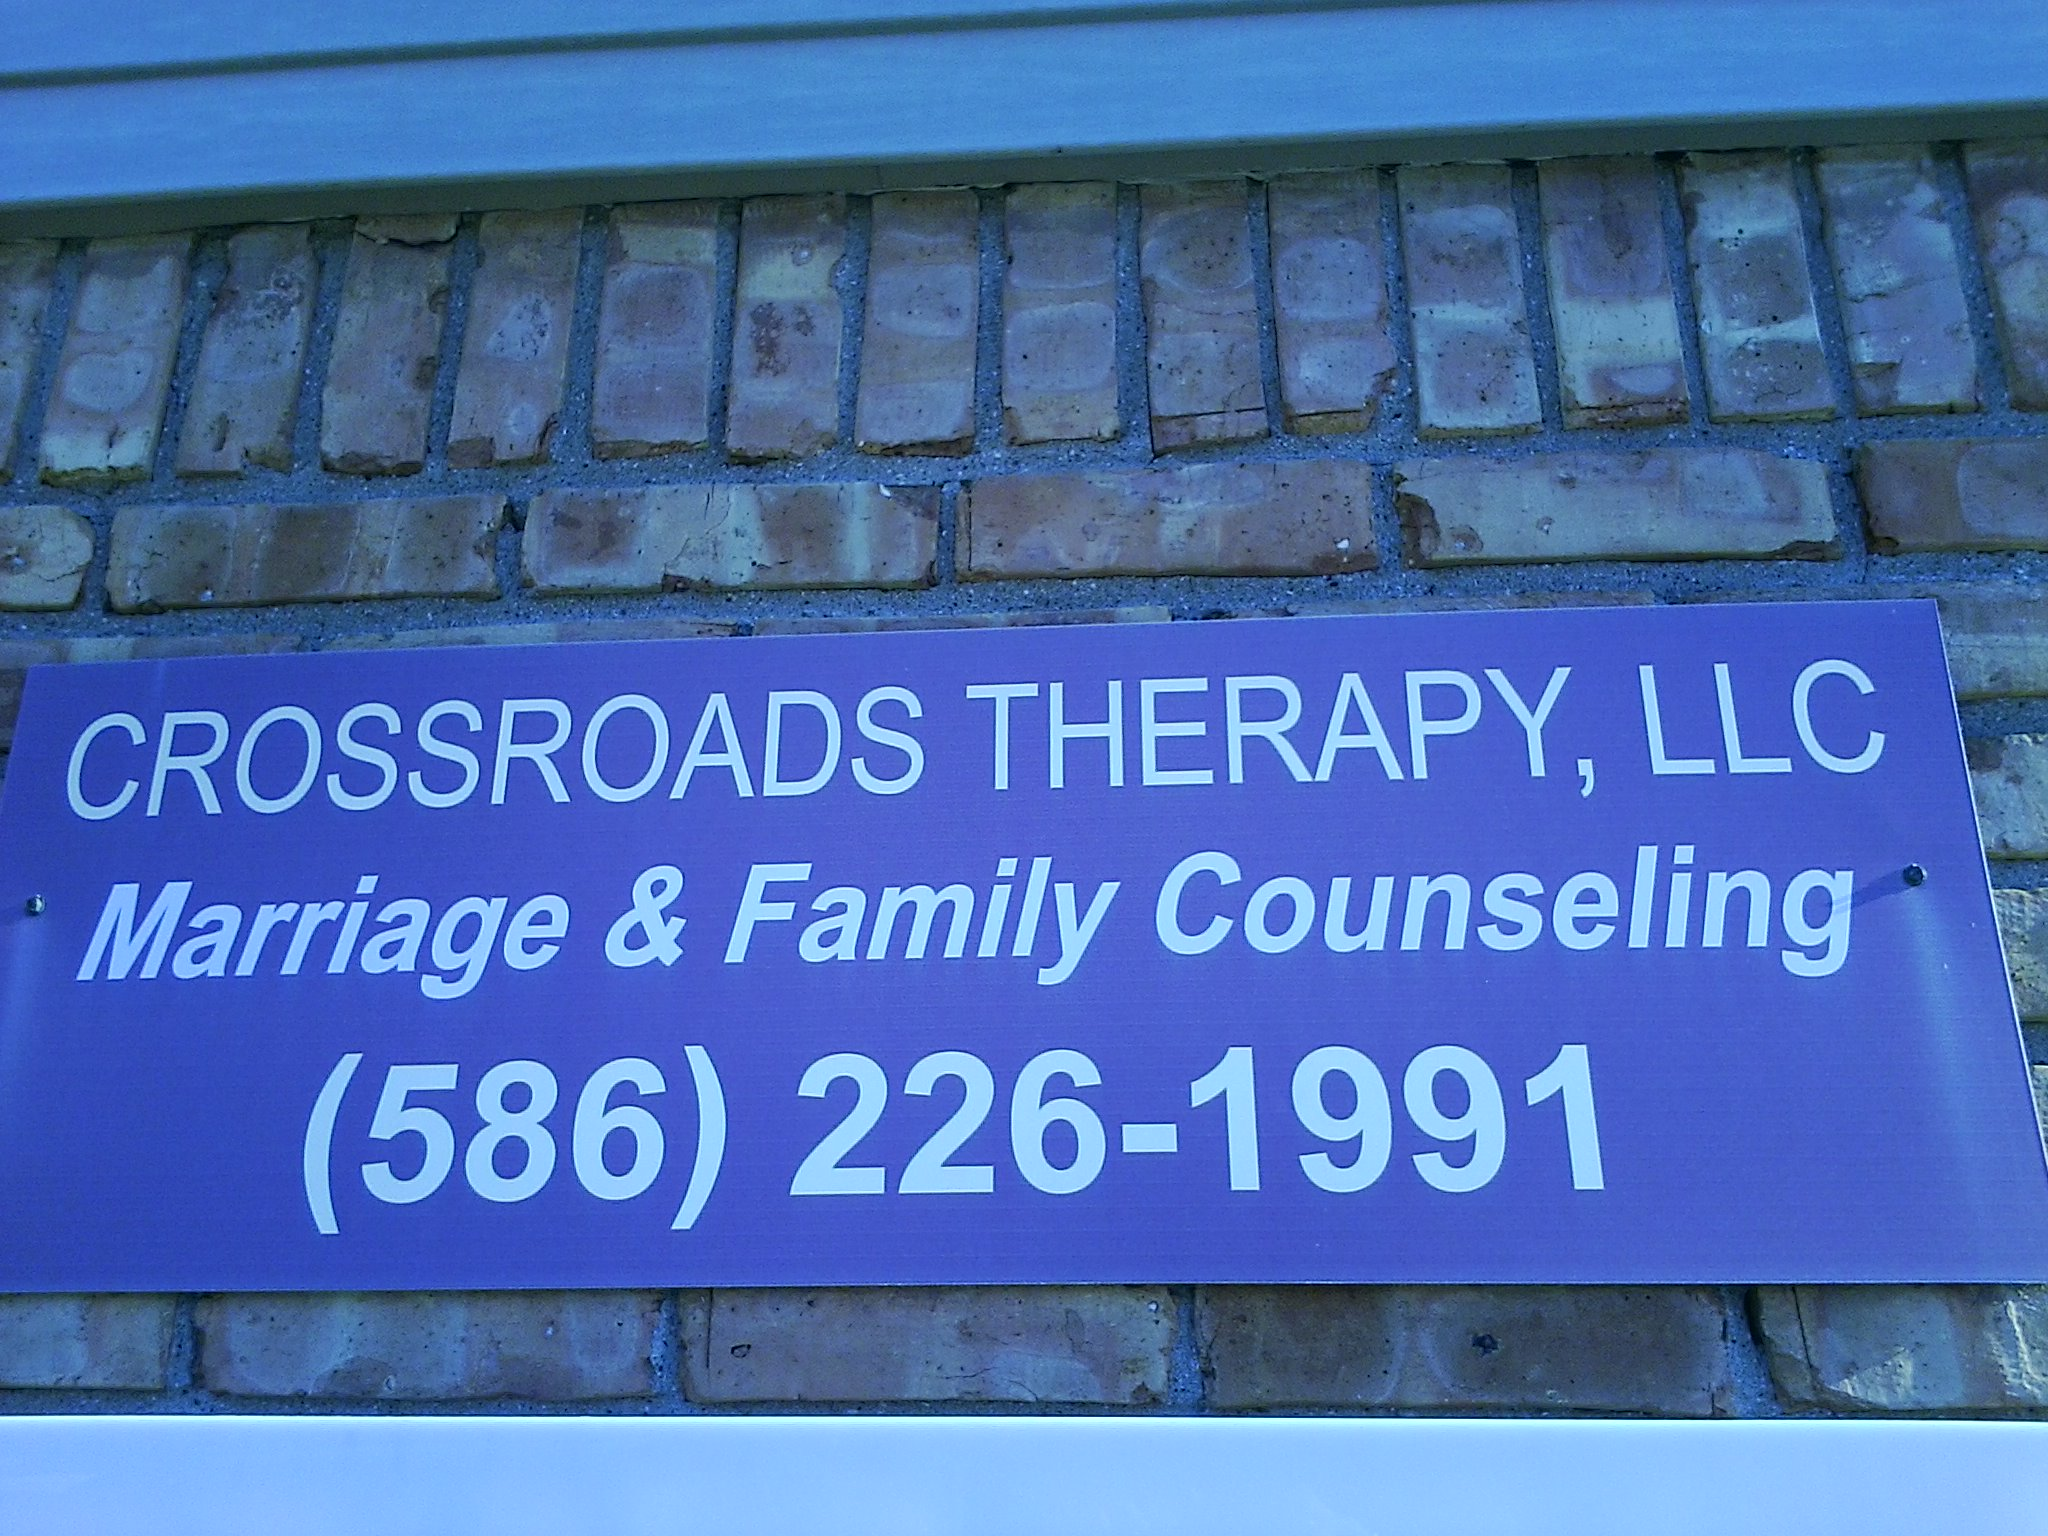 Mark F. Warchol, Marriage & Family Therapist Clinton Township, MI